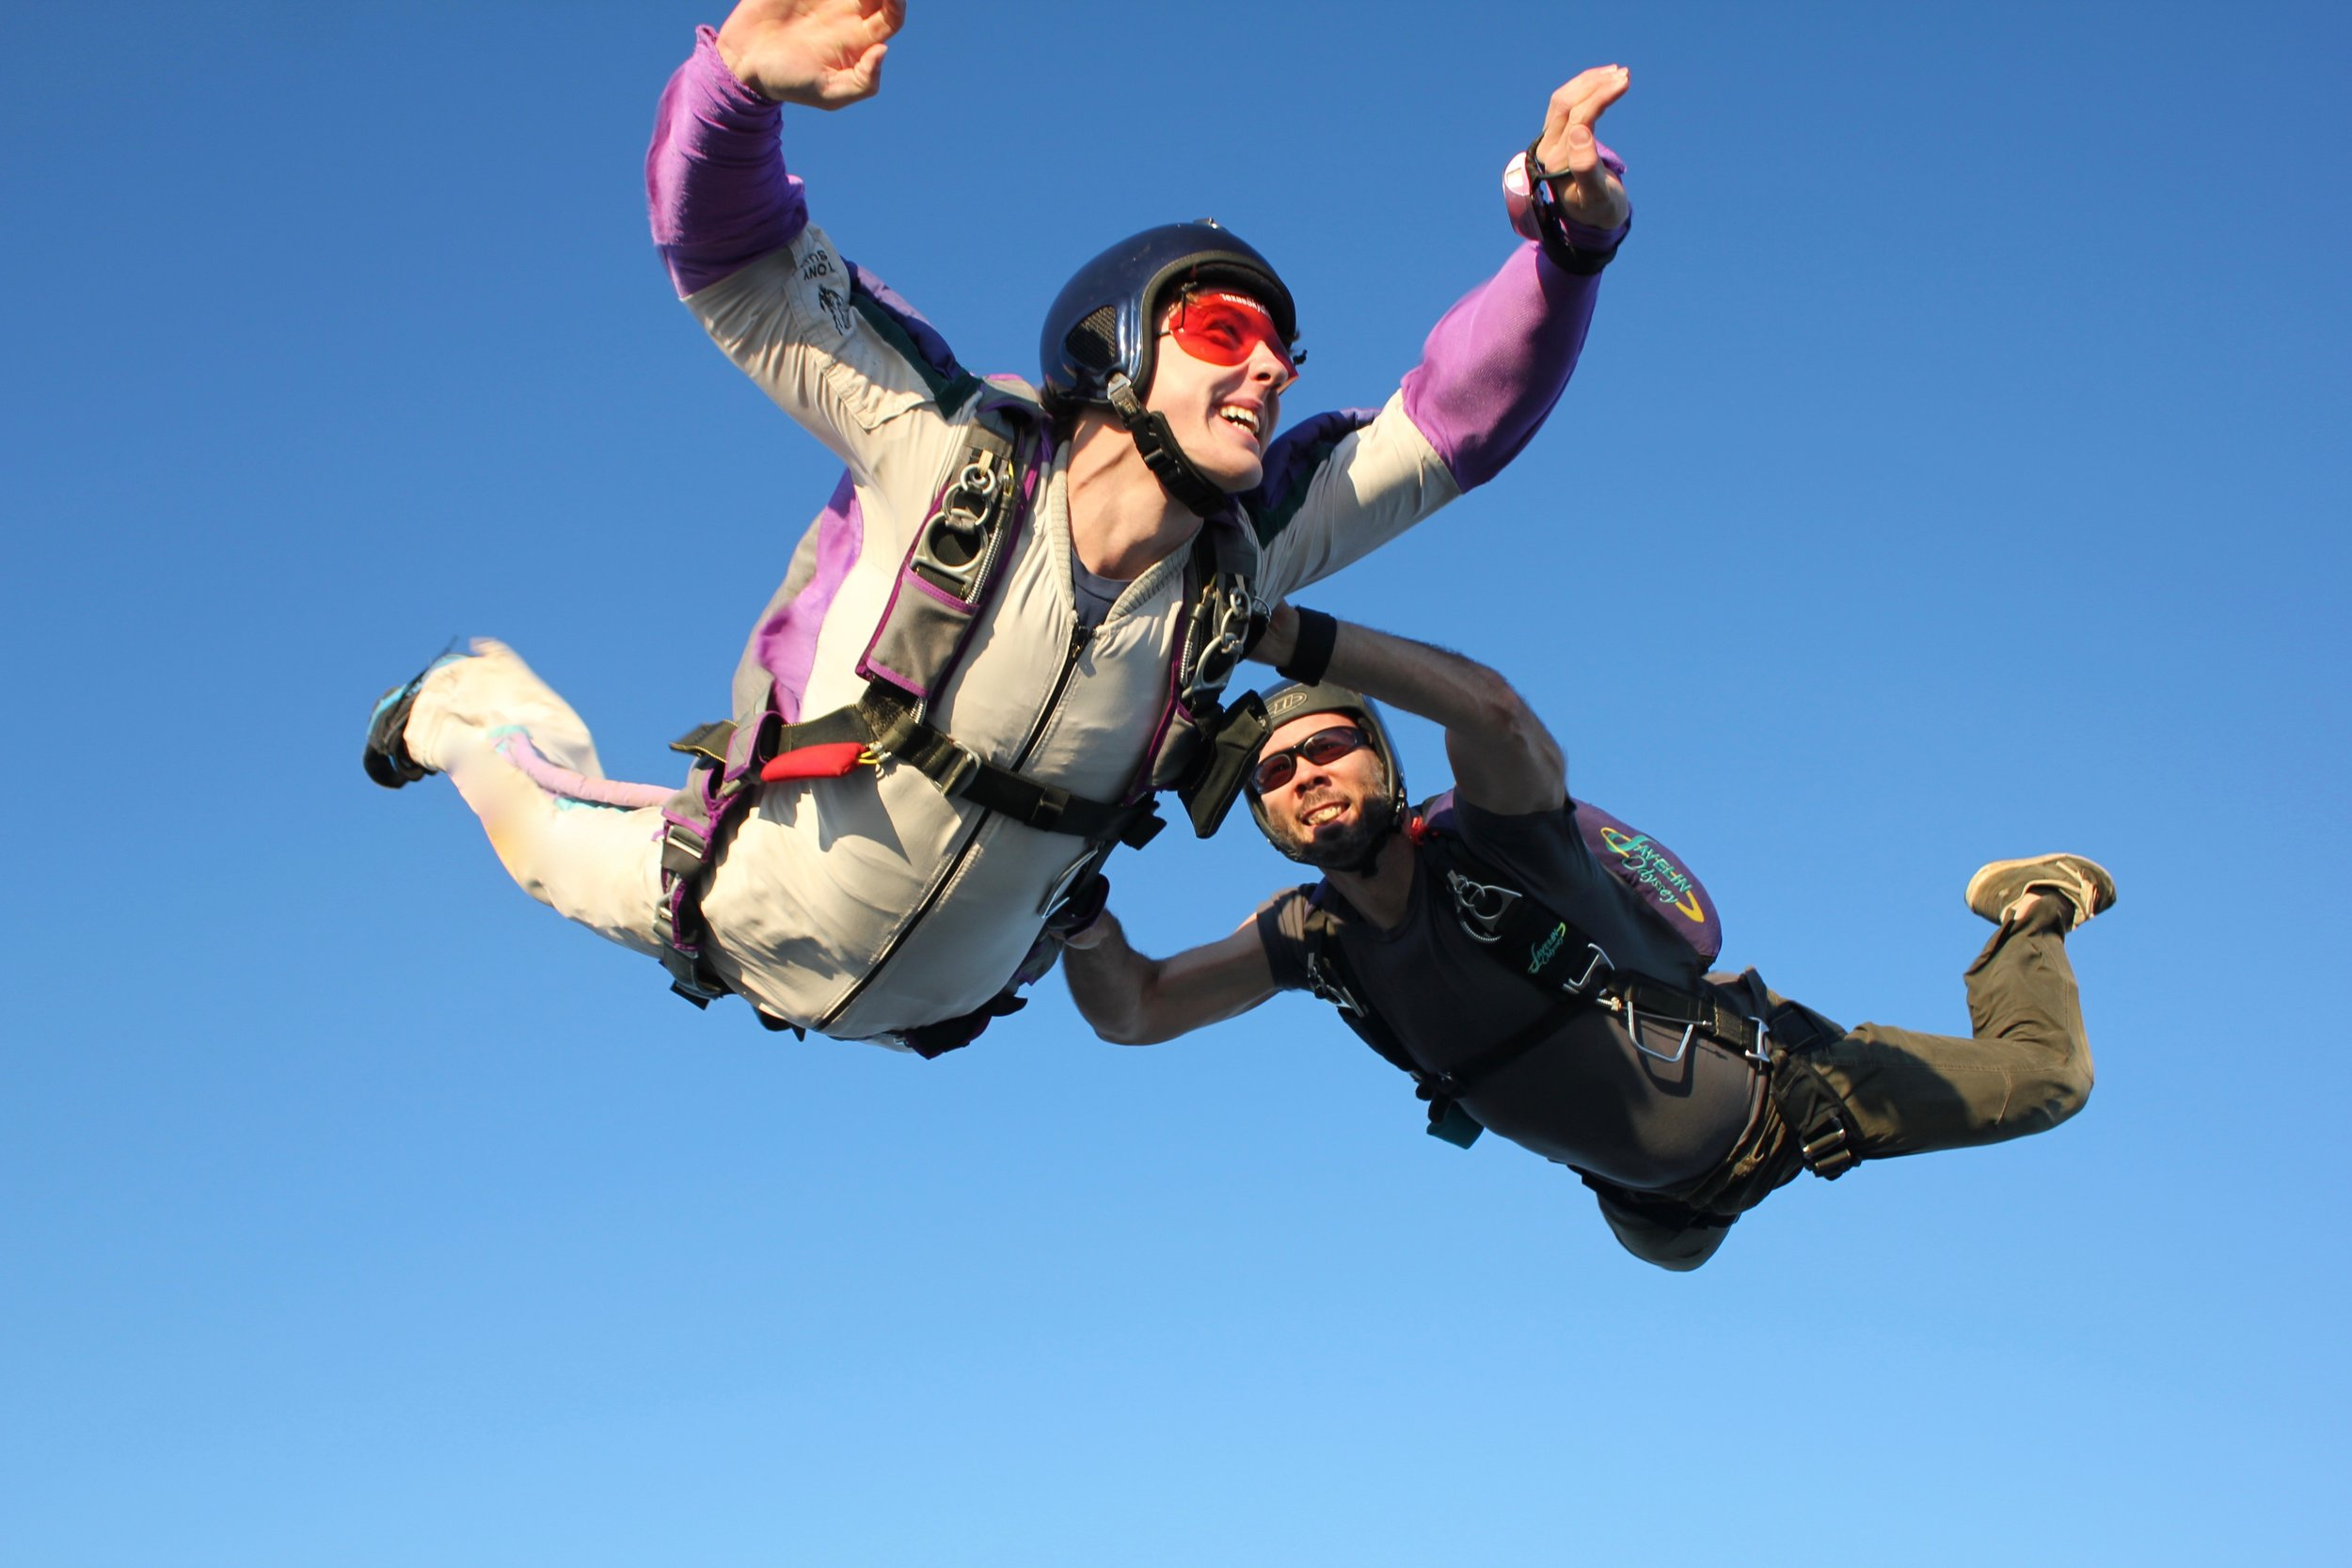 Texas Skydiving -- Get Your Skydive License at Texas Skydiving